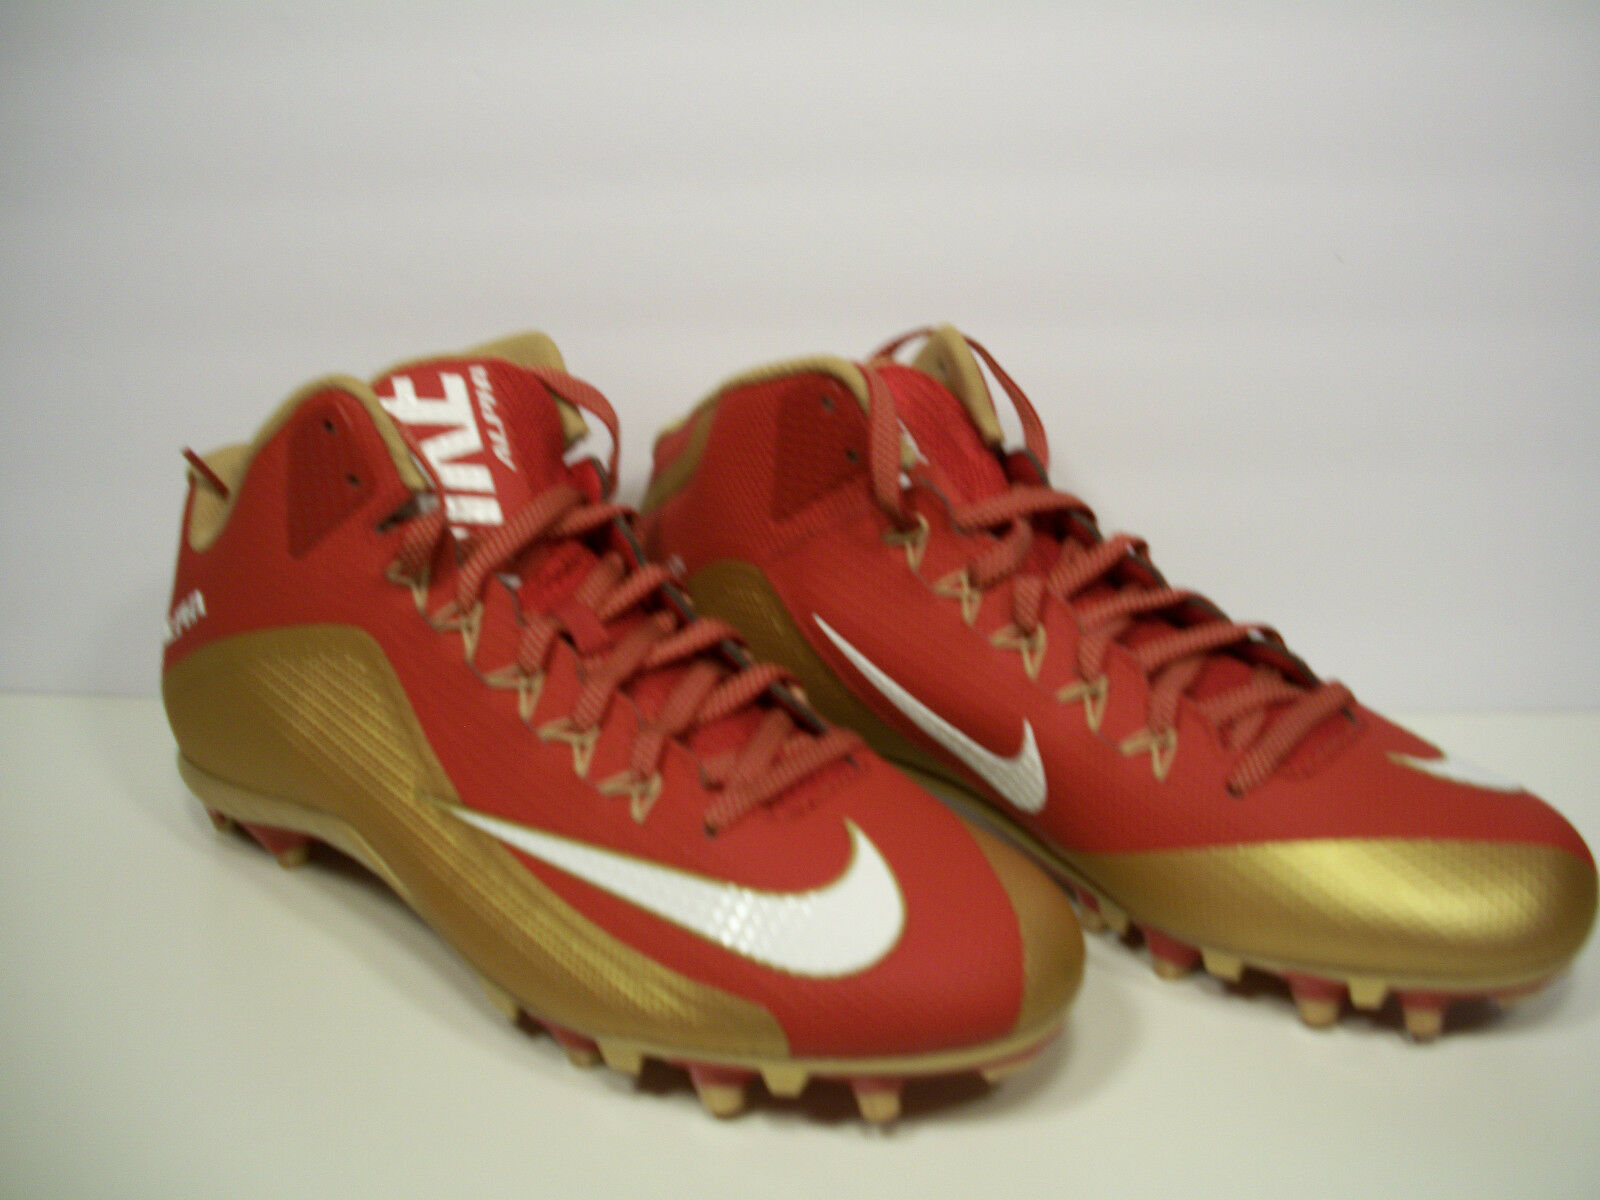 NIKE Mens Alpha Pro 2 3 4 TD Football Cleats Red gold 729444-628 13